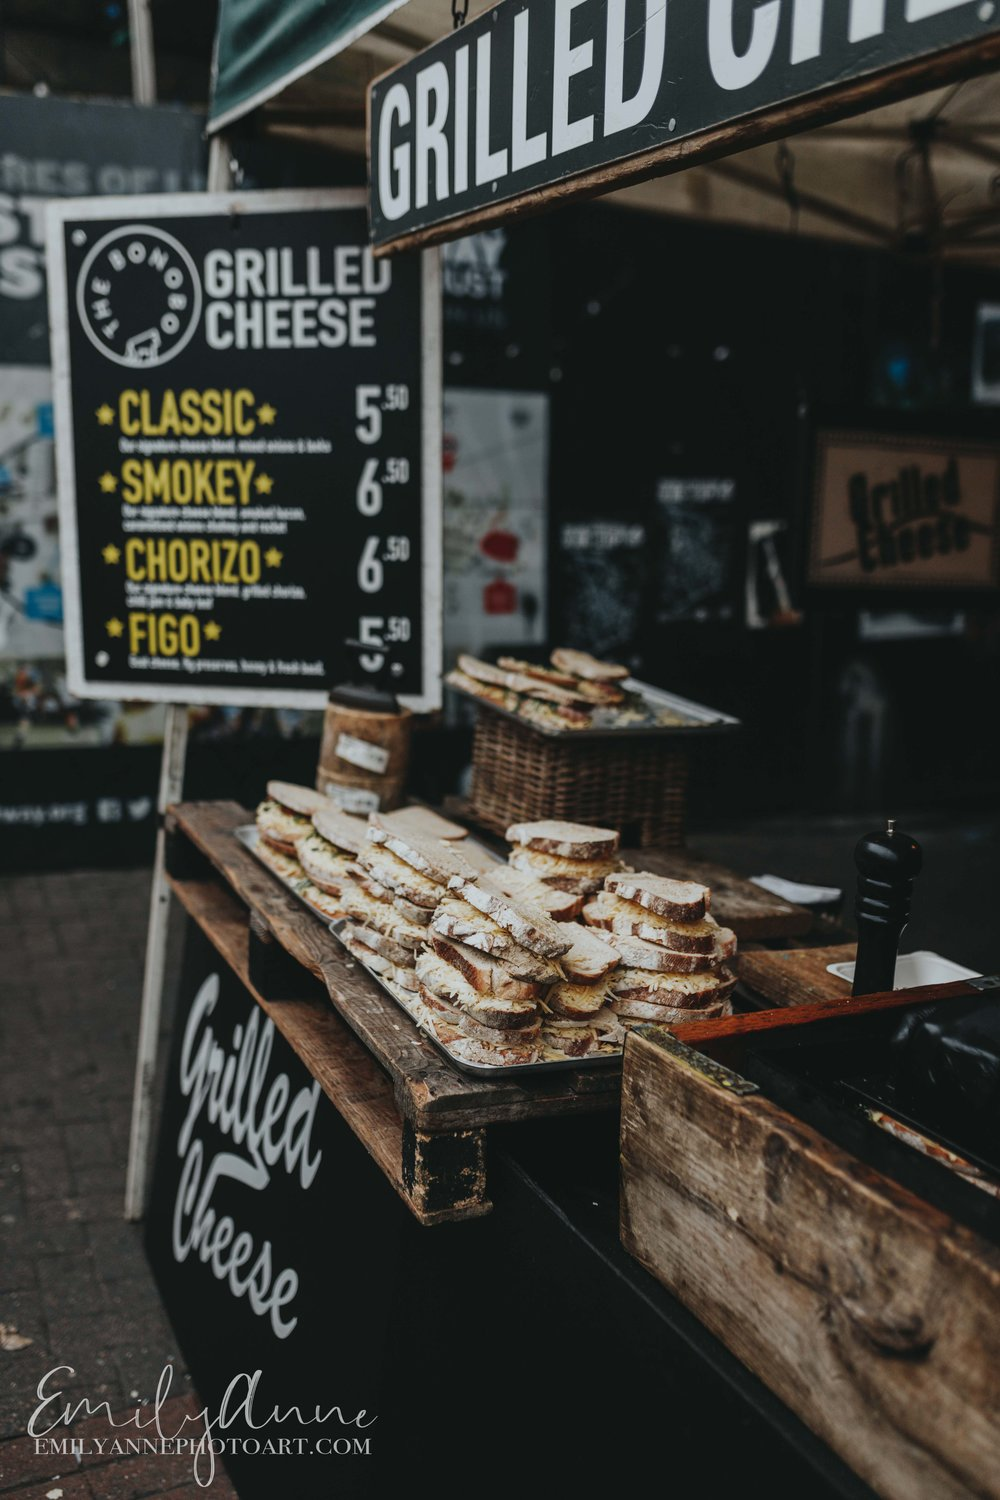 grilled cheese sandwiches on Portobello road market UK London